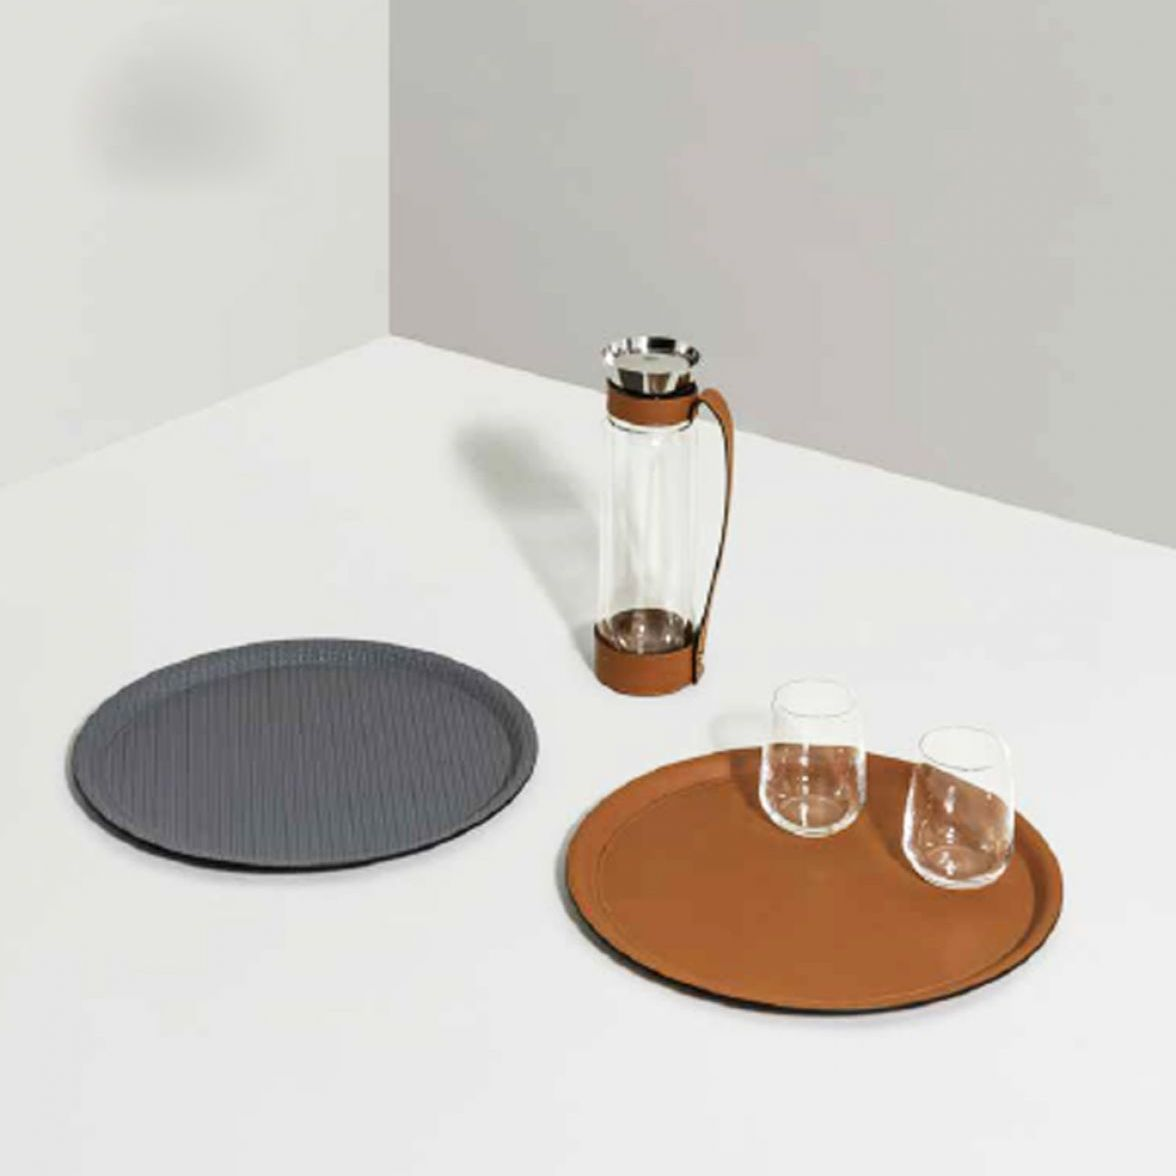 Albi round tray & thermal carafe